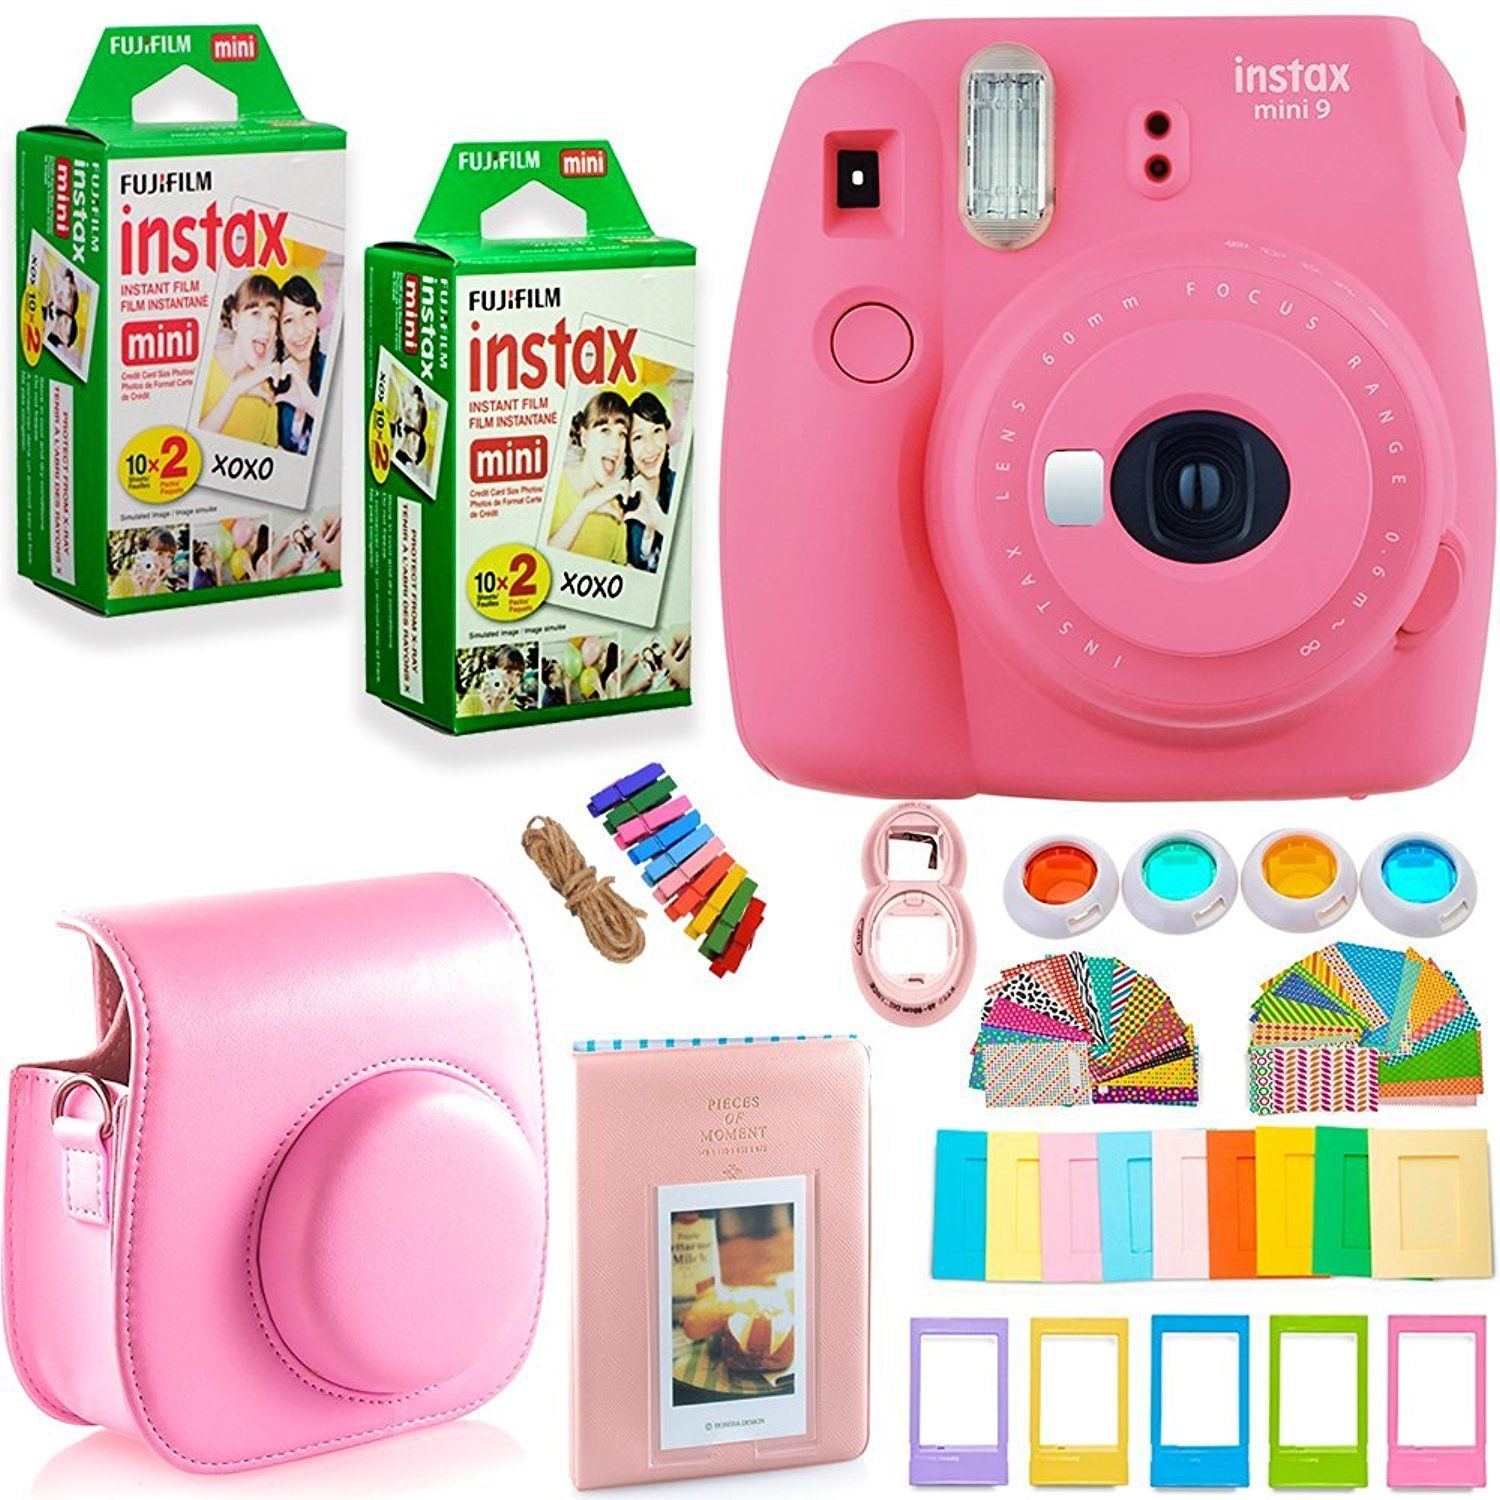 Fujifilm Instax Mini 9 Instant Camera ICE Blue with Custom Case Accessories Bundle Fuji Instax Film Value Pack 40 Sheets Color Filters Assorted Frames More Photo Album Selfie Lens